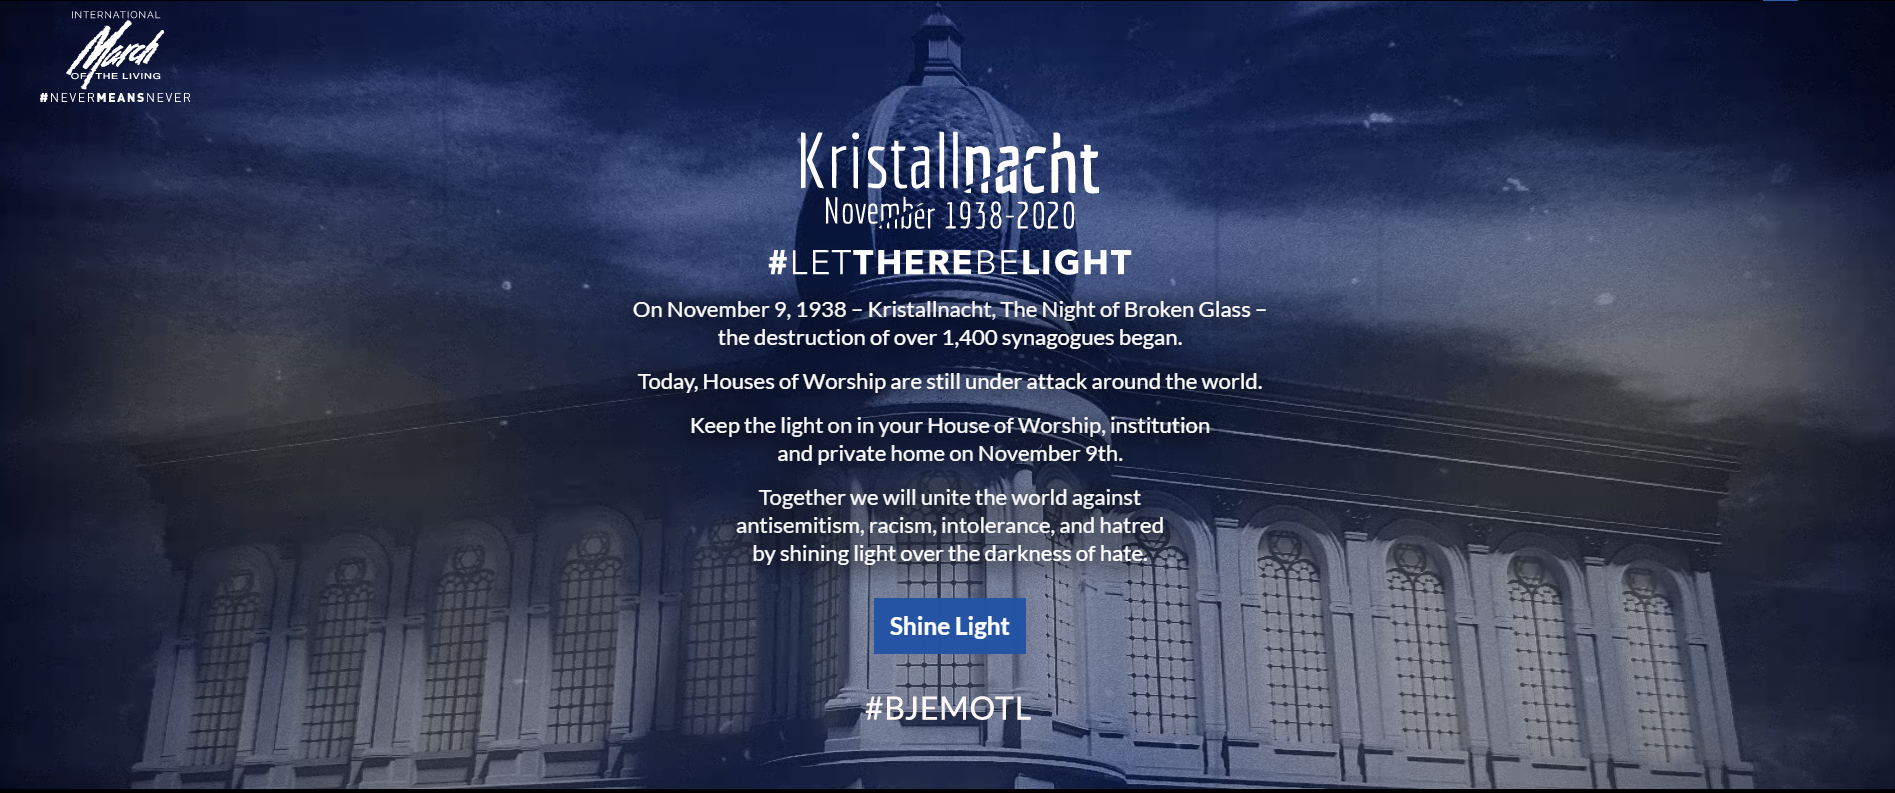 Image of Kristallnacht and the words Let There Be Light